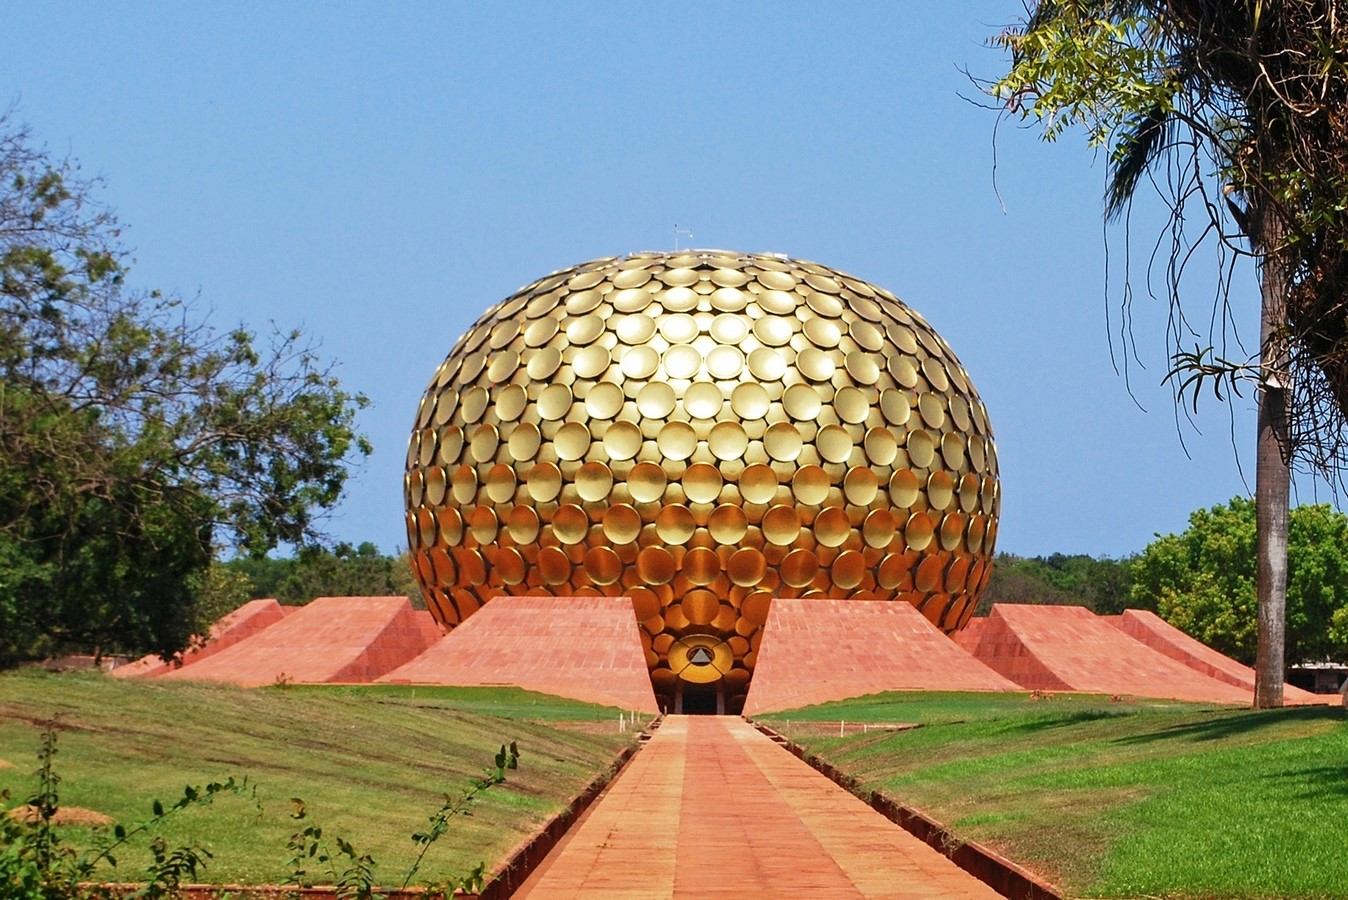 Paolo Tommasi's contribution in shaping Auroville- Sheet5